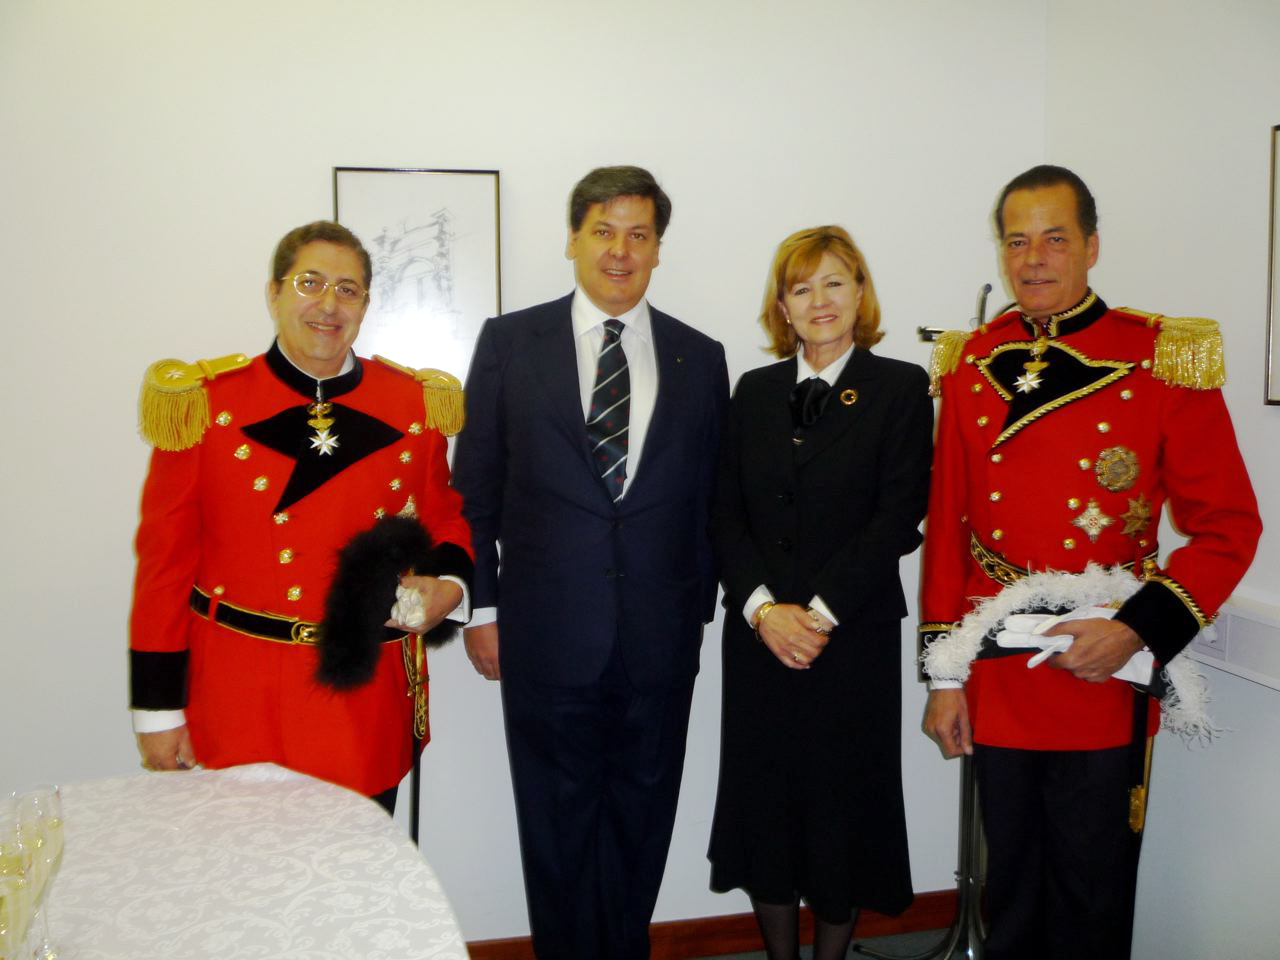 THE MINISTER COUNSELLOR WITH PRINCE MANFRED WINDISCH-GRAETZ AND THE CHIEF OF PROTOCOL